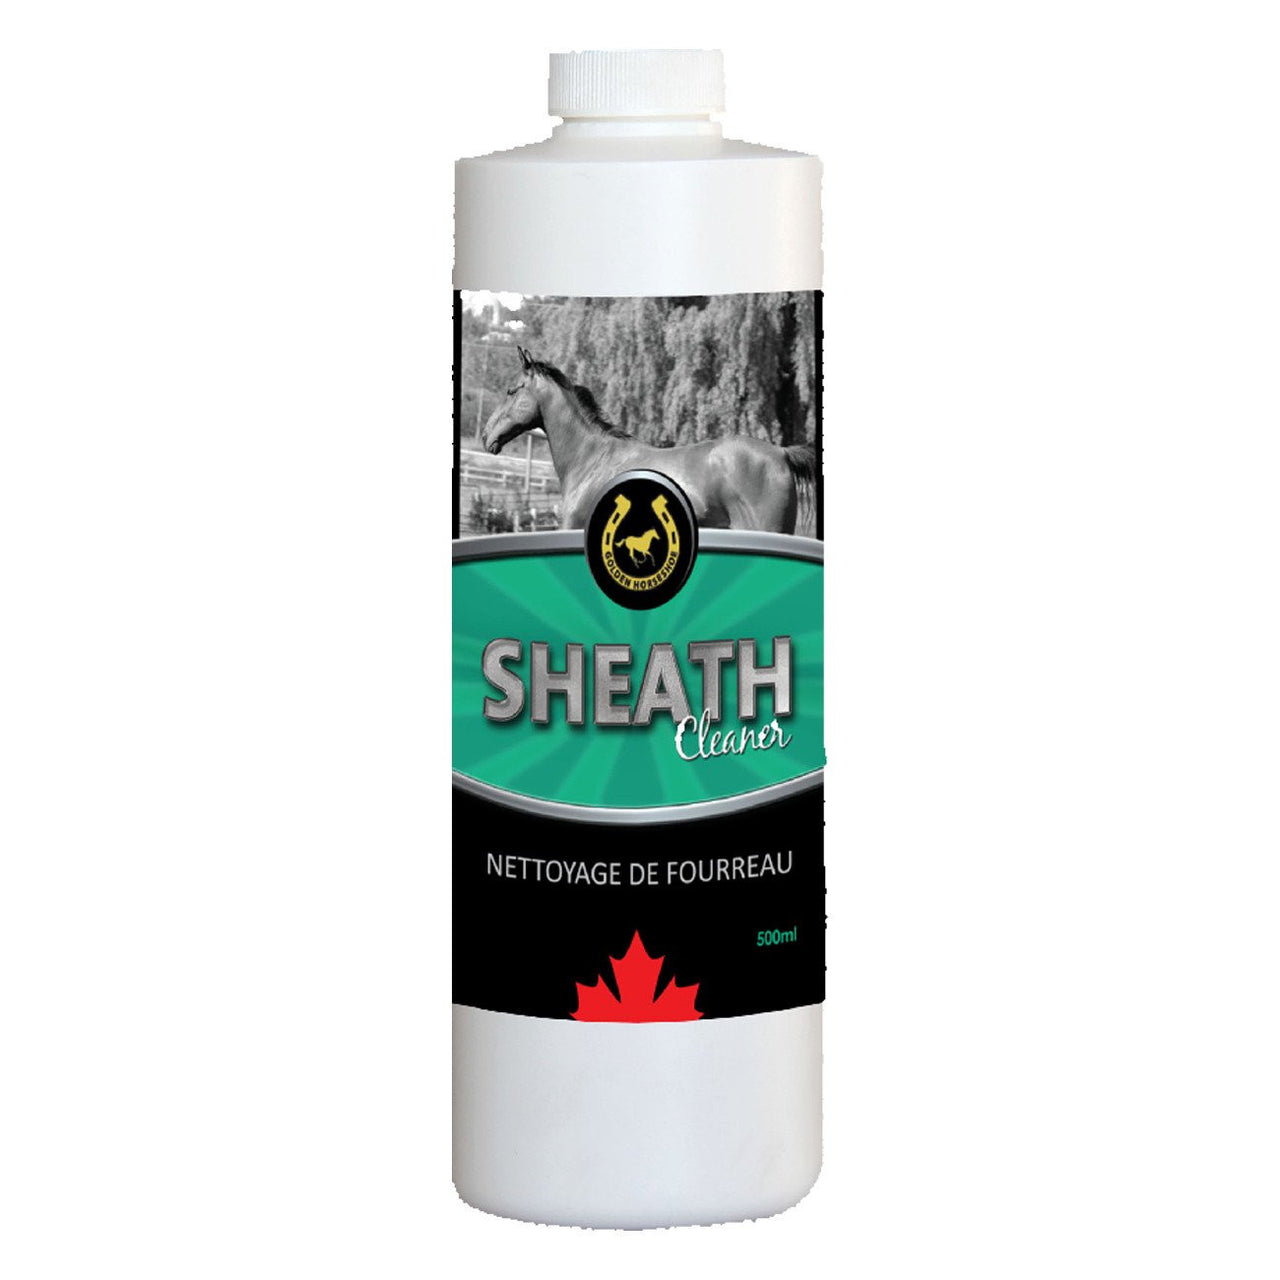 Ghs Sheath Cleaner 500Ml - Equine Care Ghs - Canada